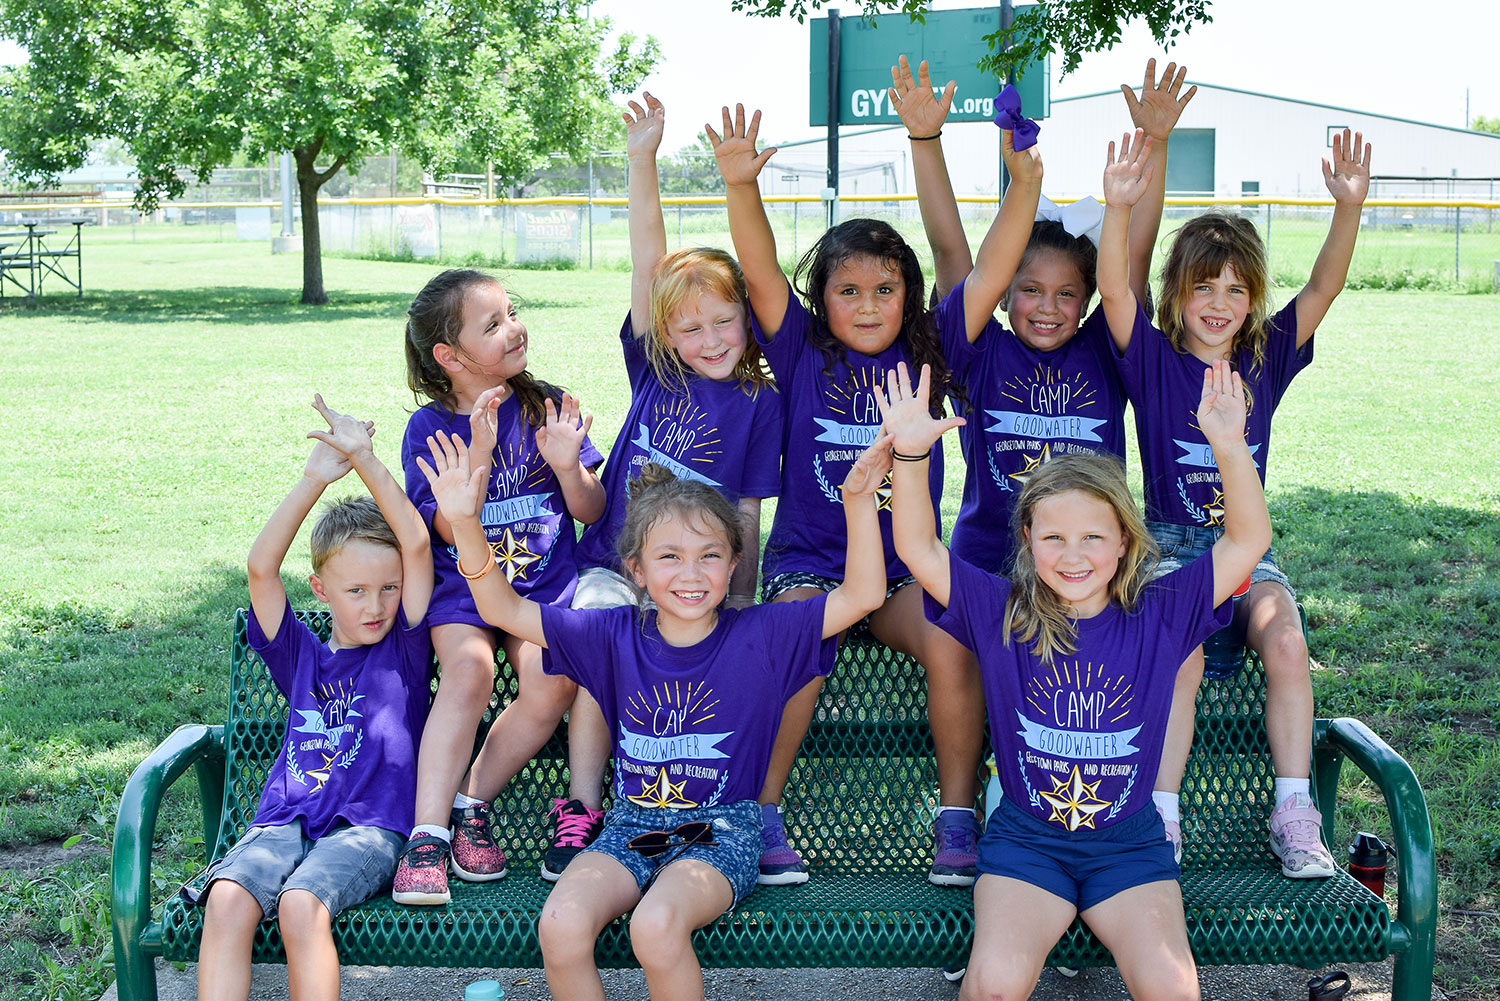 Group of children wearing purple shirts at Camp Goodwater in Georgetown, TX